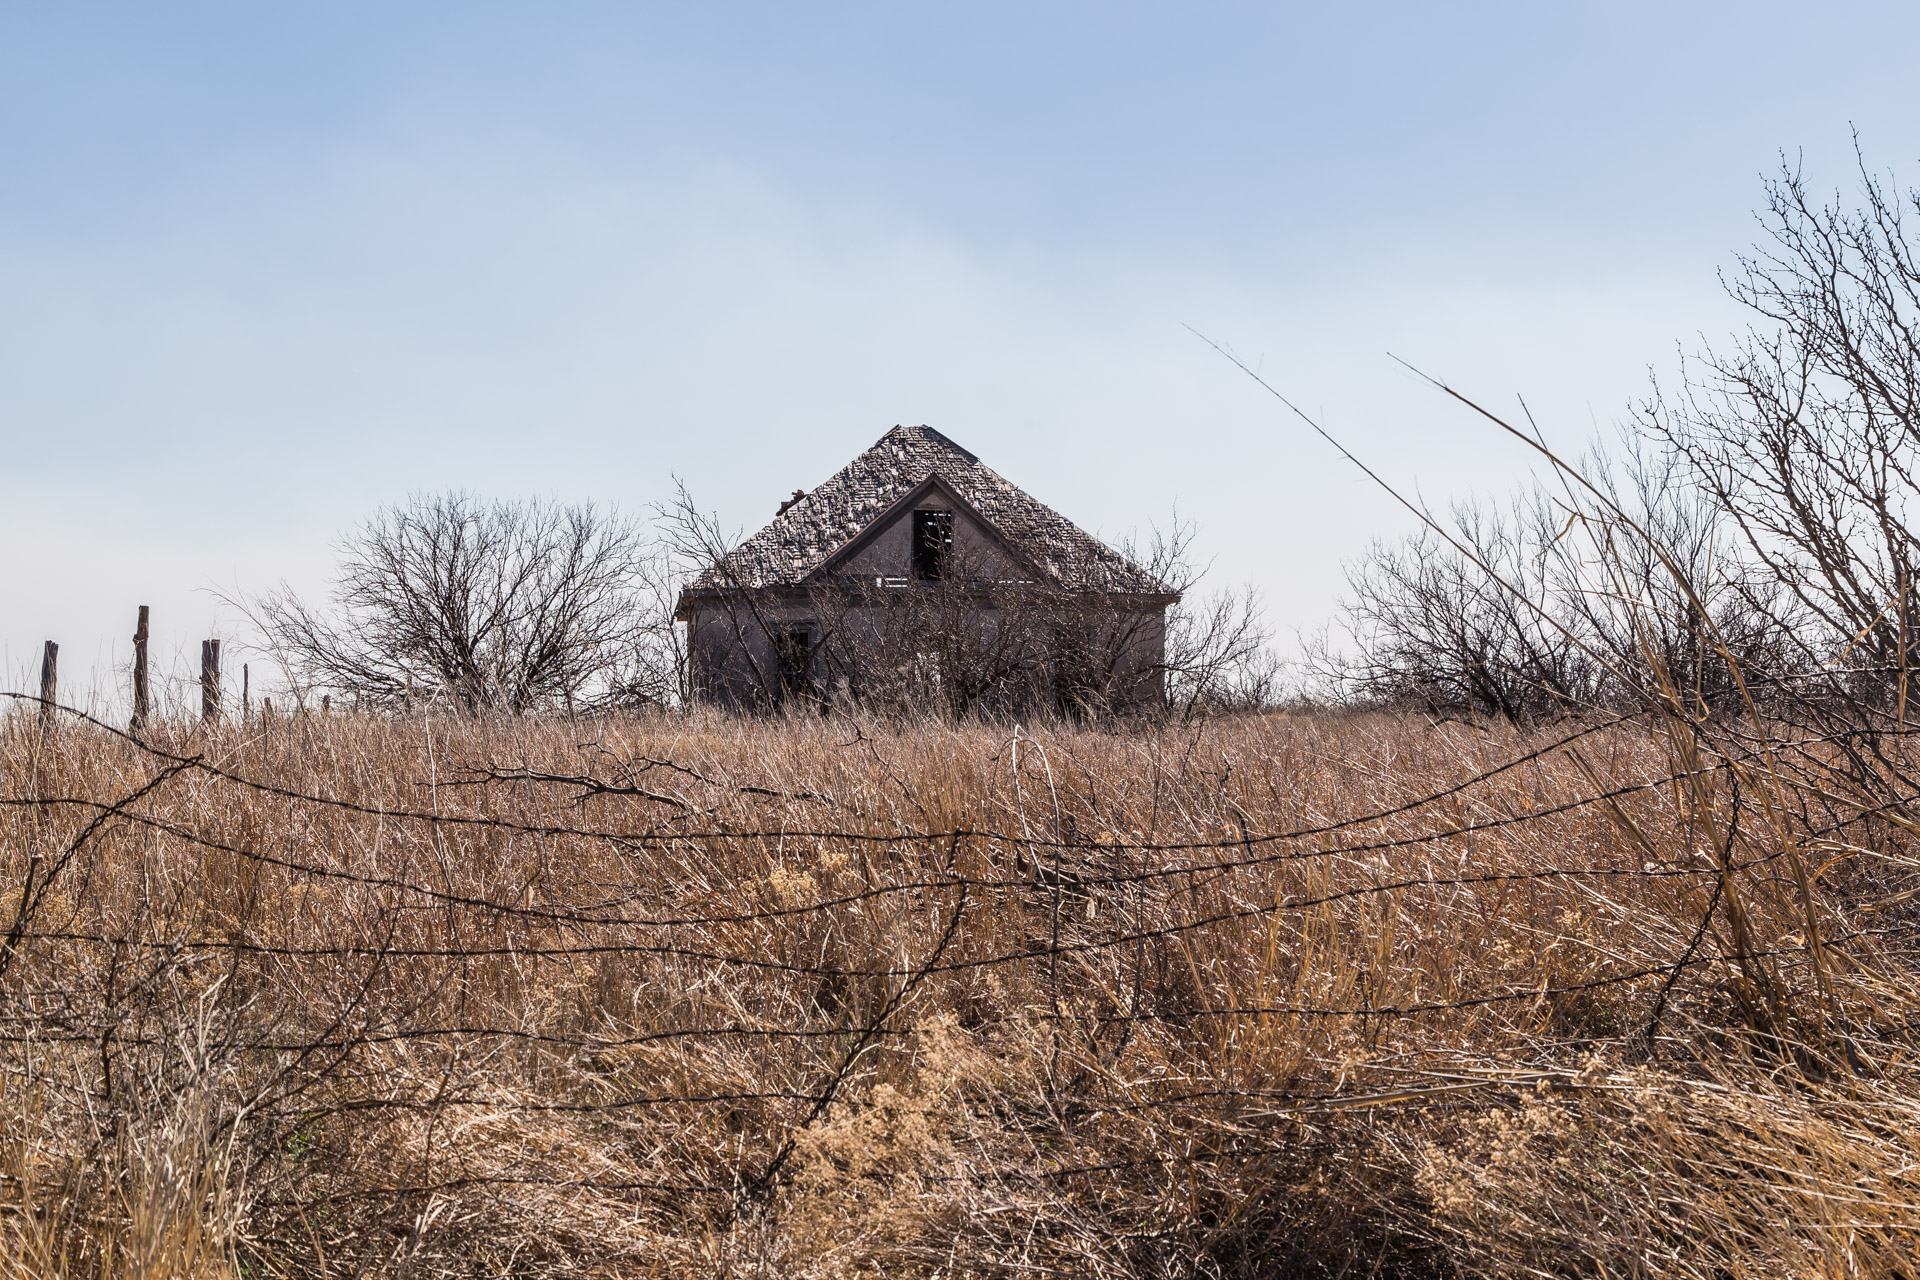 Clarendon, Texas - Hollow House With Barbed Wire